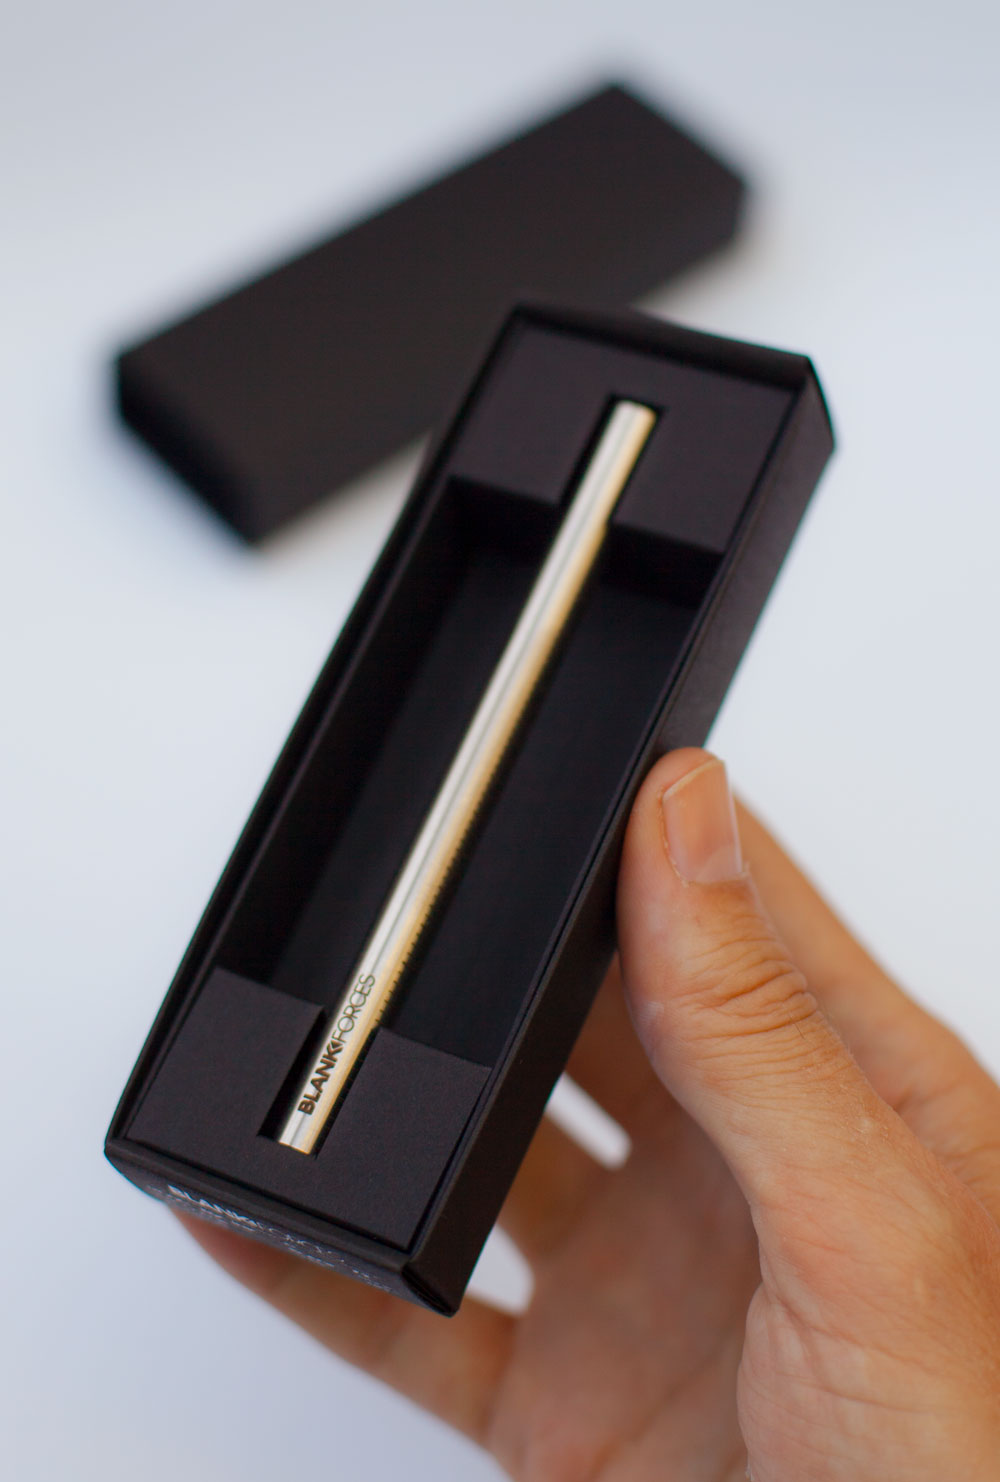 BLANK FORCES - The Perfect Gift - the EDC Ink Pen Gift Box